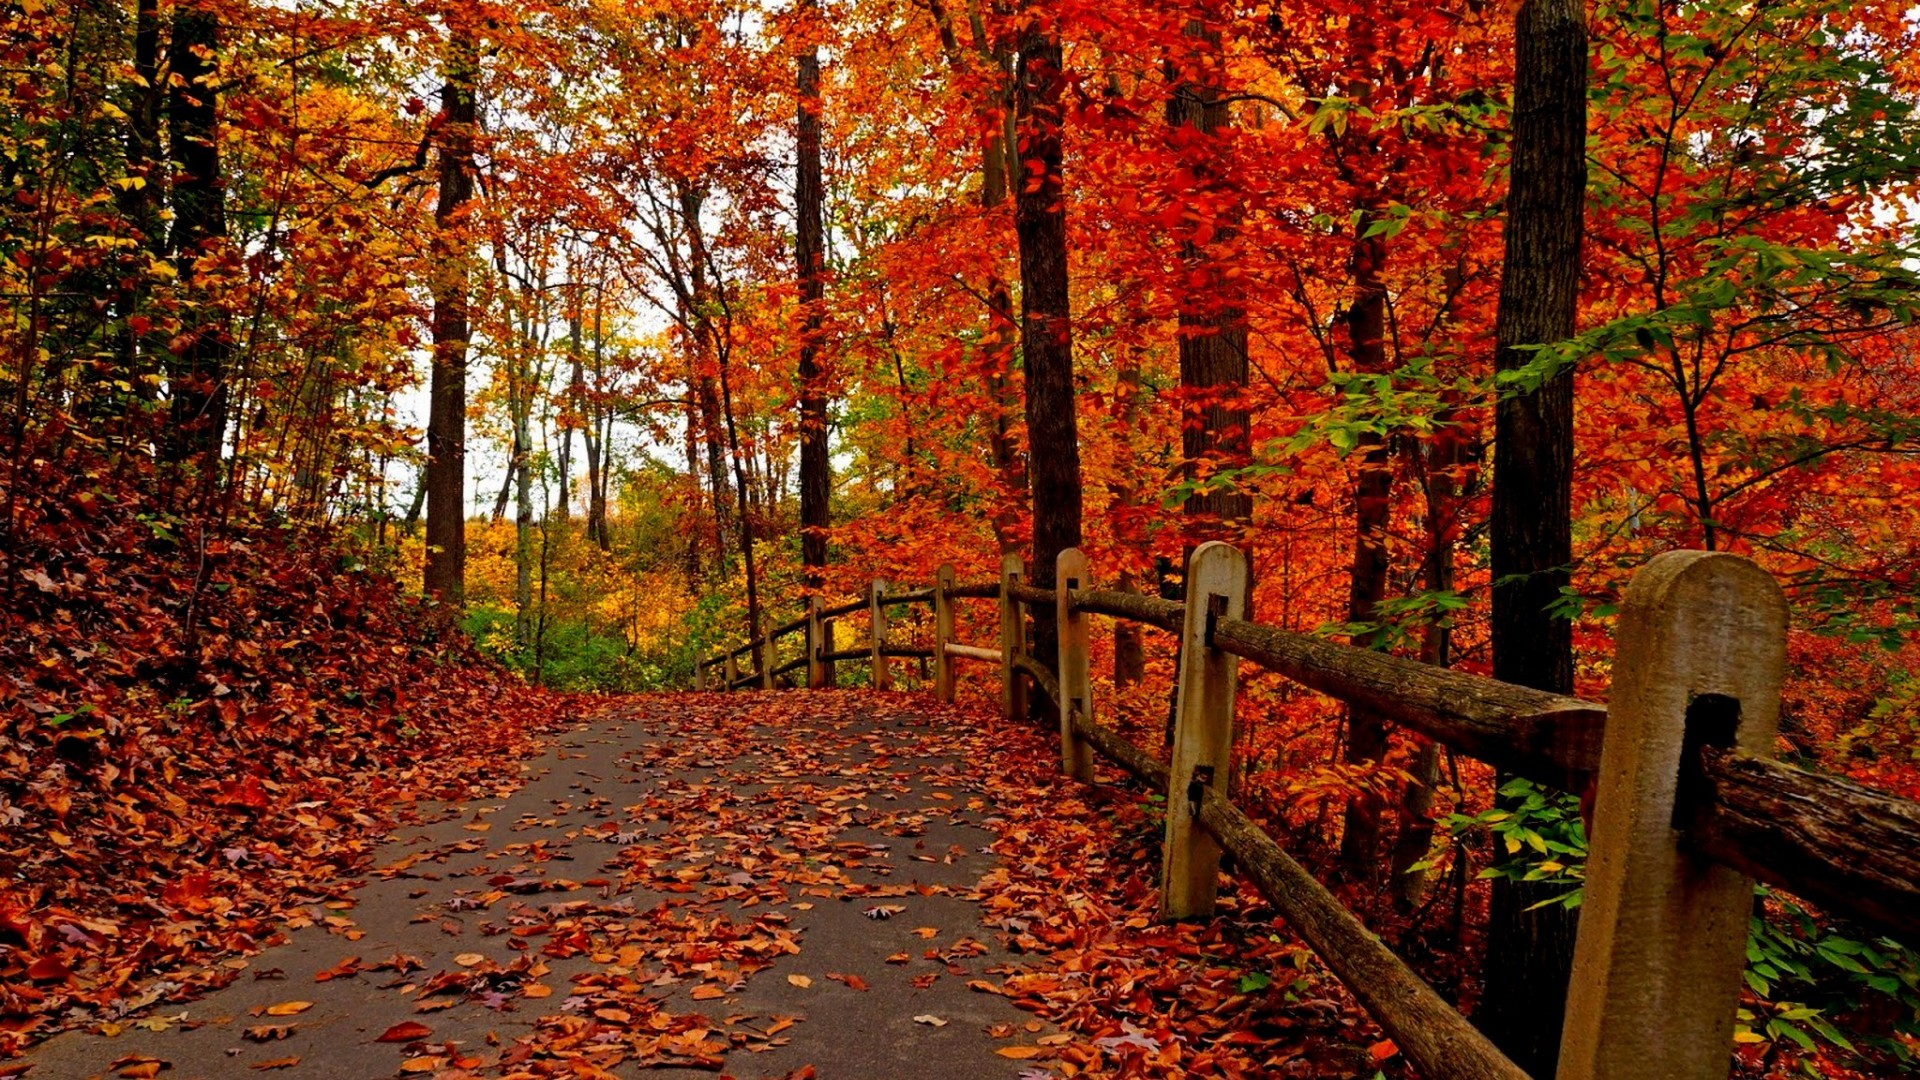 Download Wallpaper Forest Autumn Tree Road Park Leaves 1920x1080 With Red On Trees